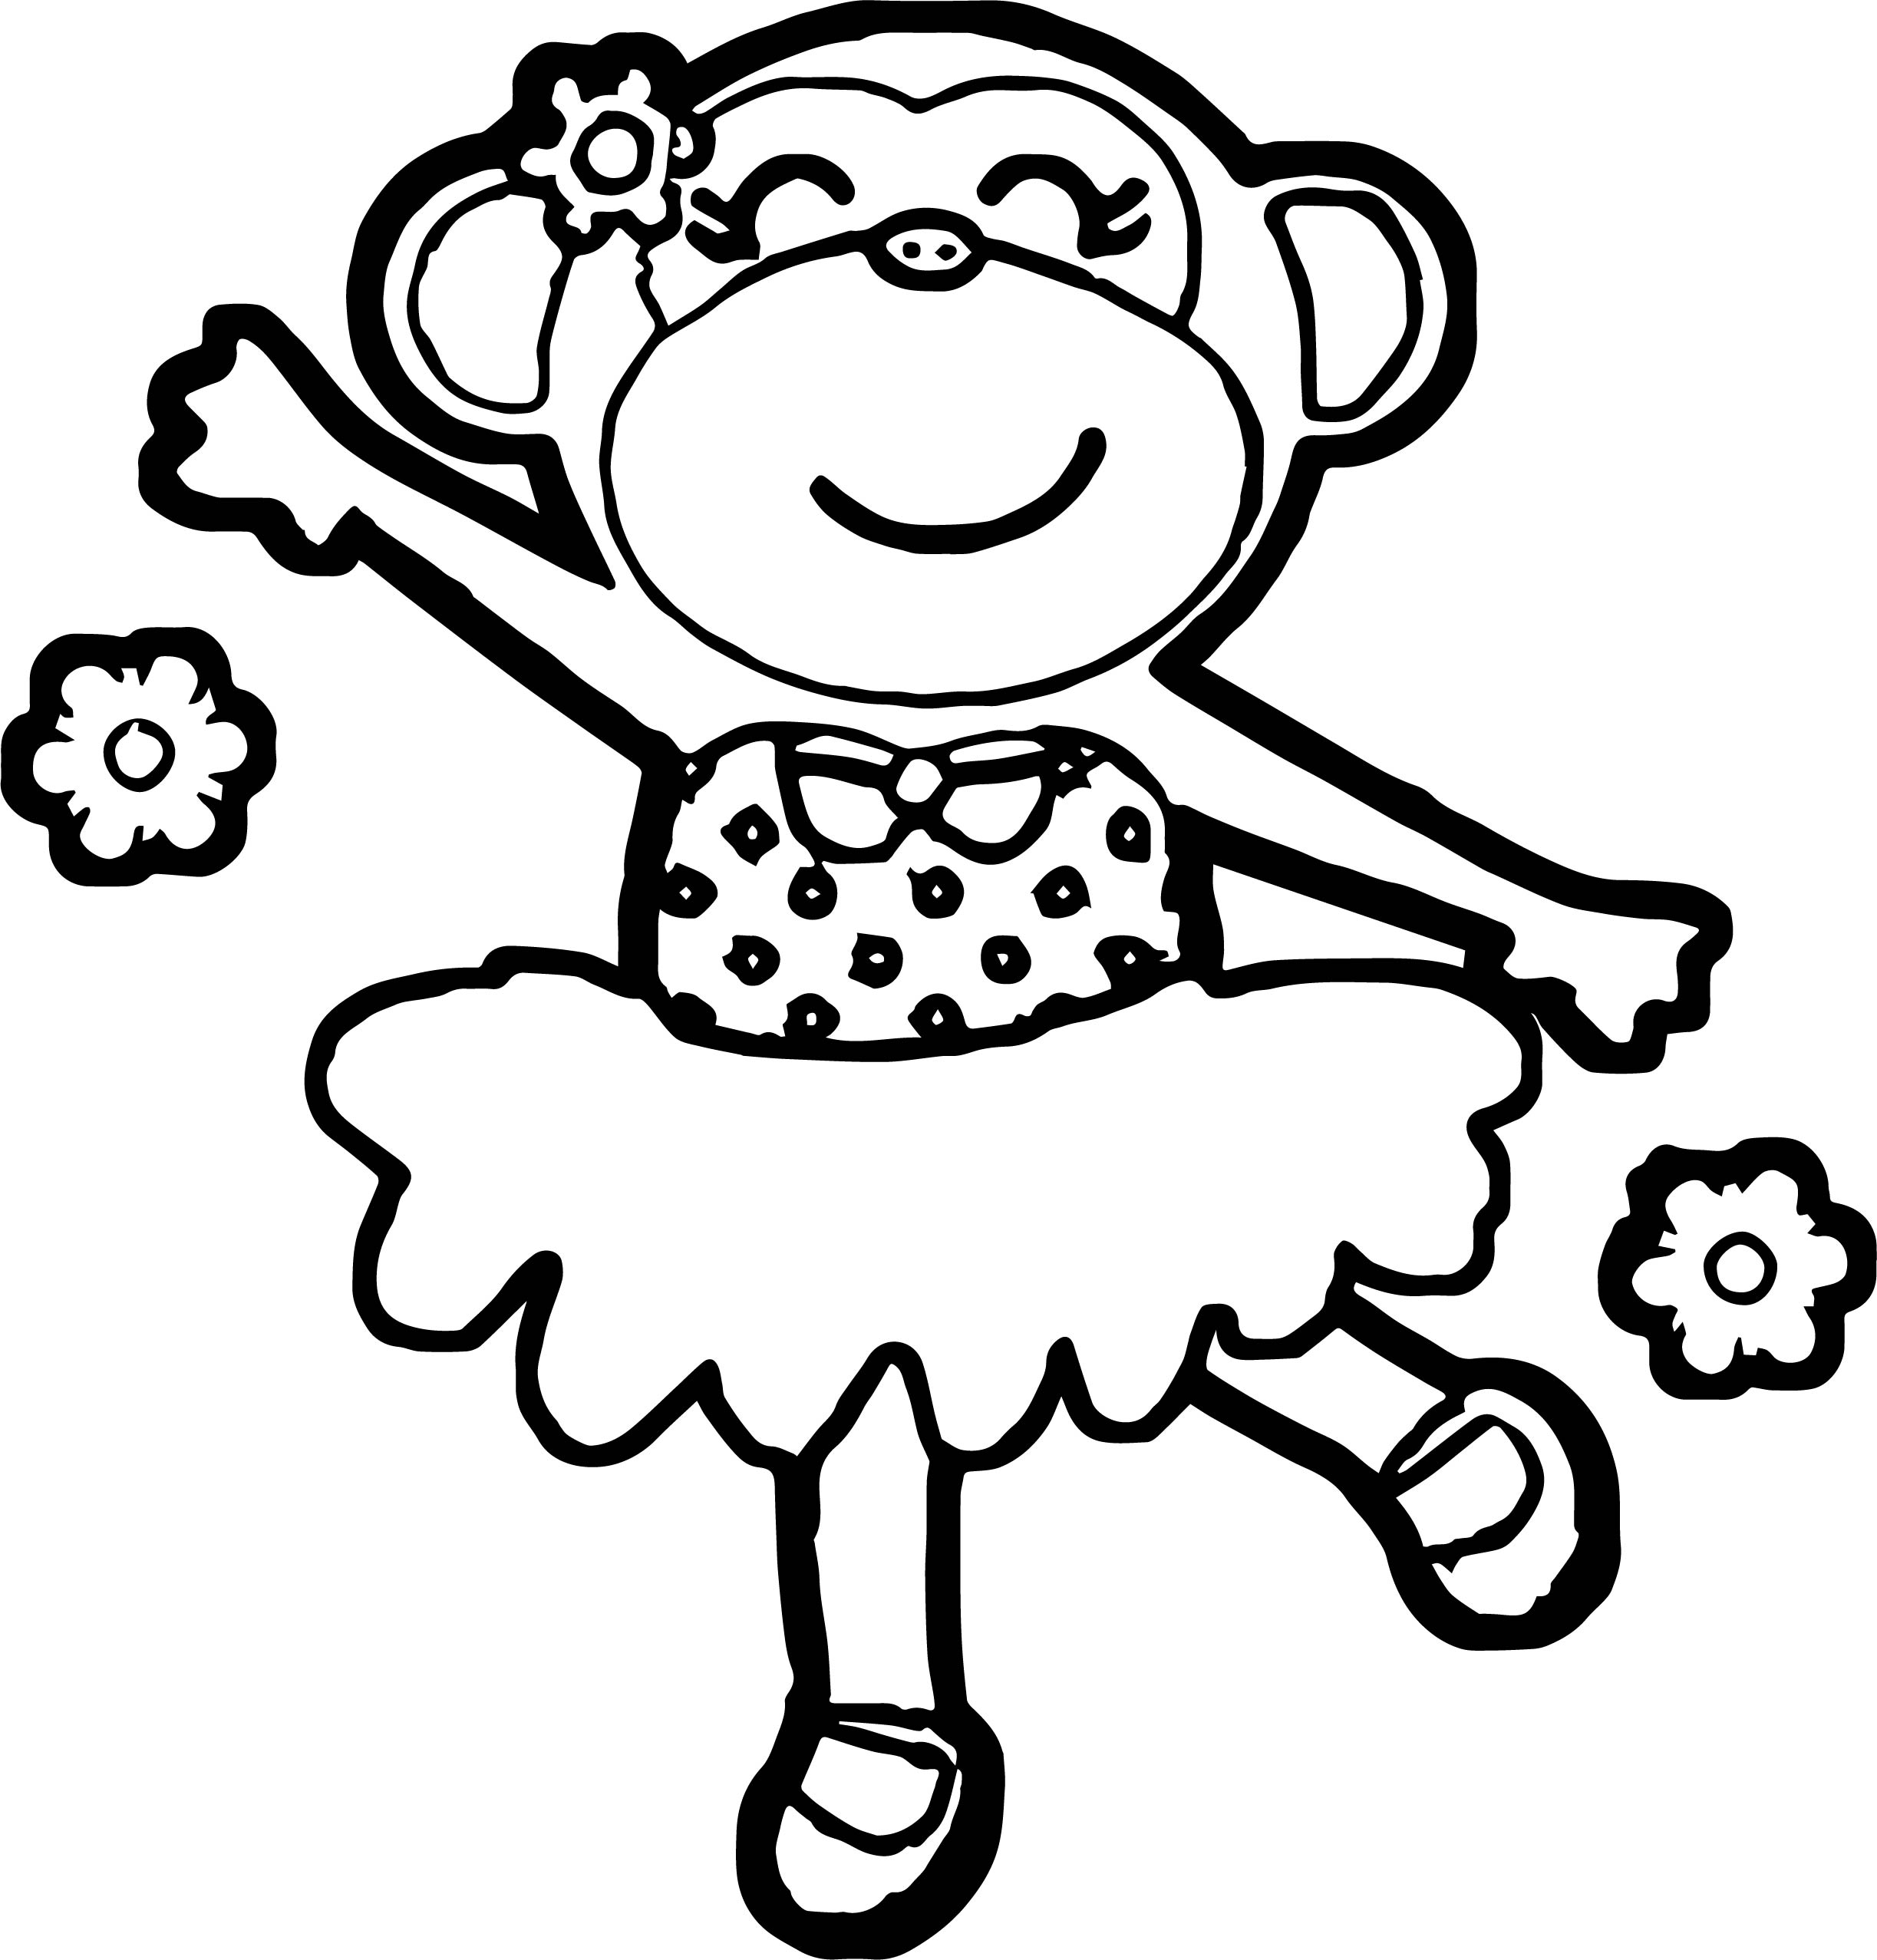 Monkey Ballerina Coloring Page